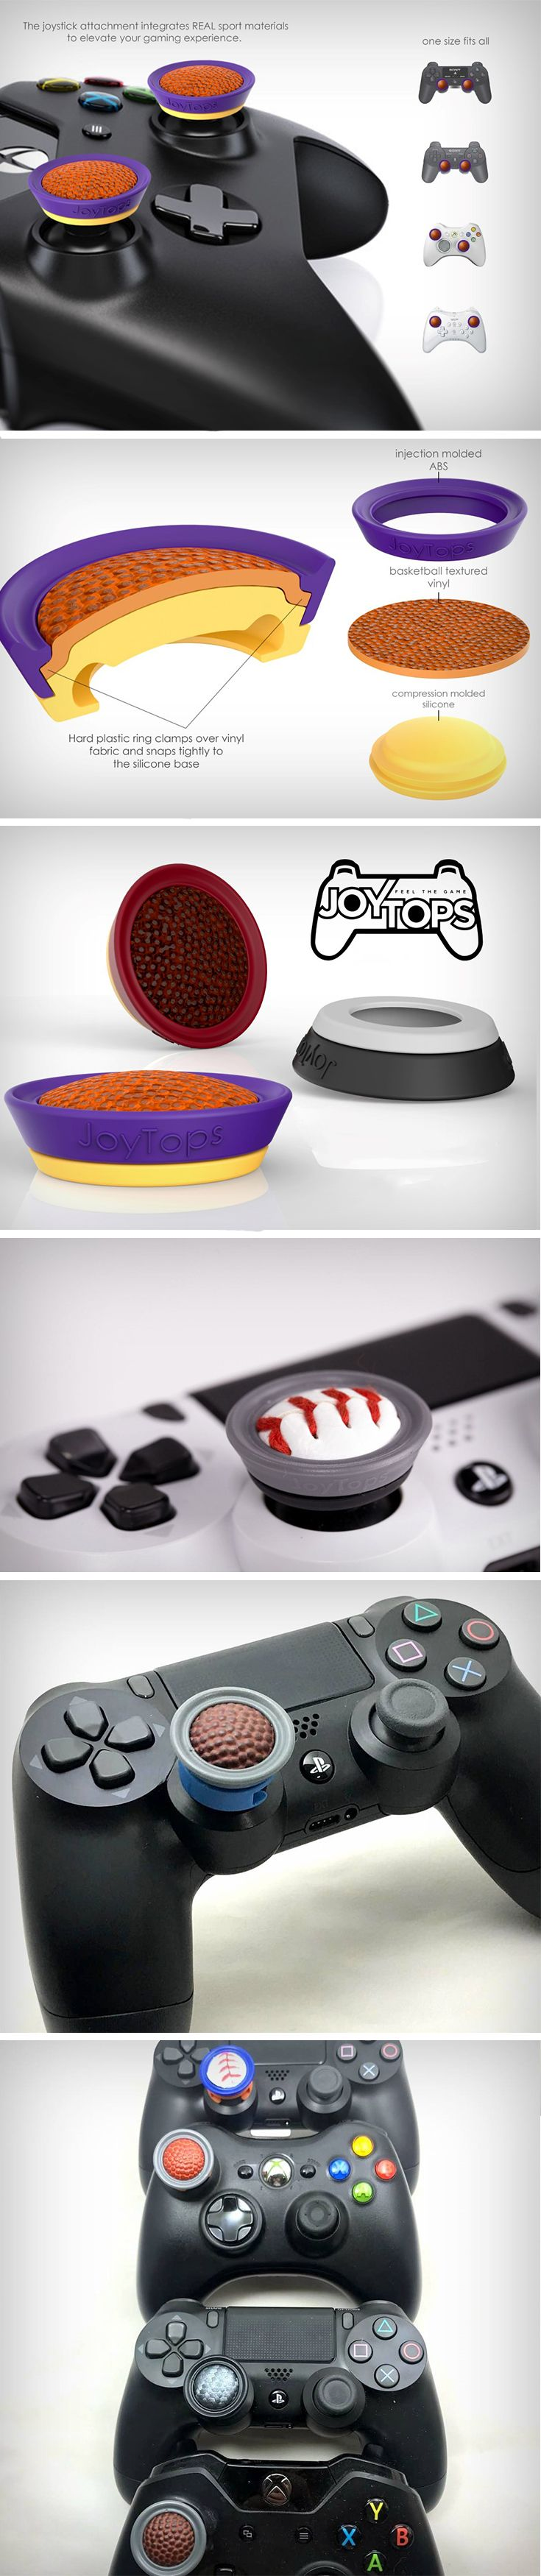 In probably the ultimate real-life virtual-life sports cross-over, JoyTops creates actual sports equipment based control buttons for joypads! The buttons feature real pieces of basketball/baseball/football cut into the shape of the joypad button.  JoyTops allows gamers to get that very feel and comfort while gaming on their joypads.